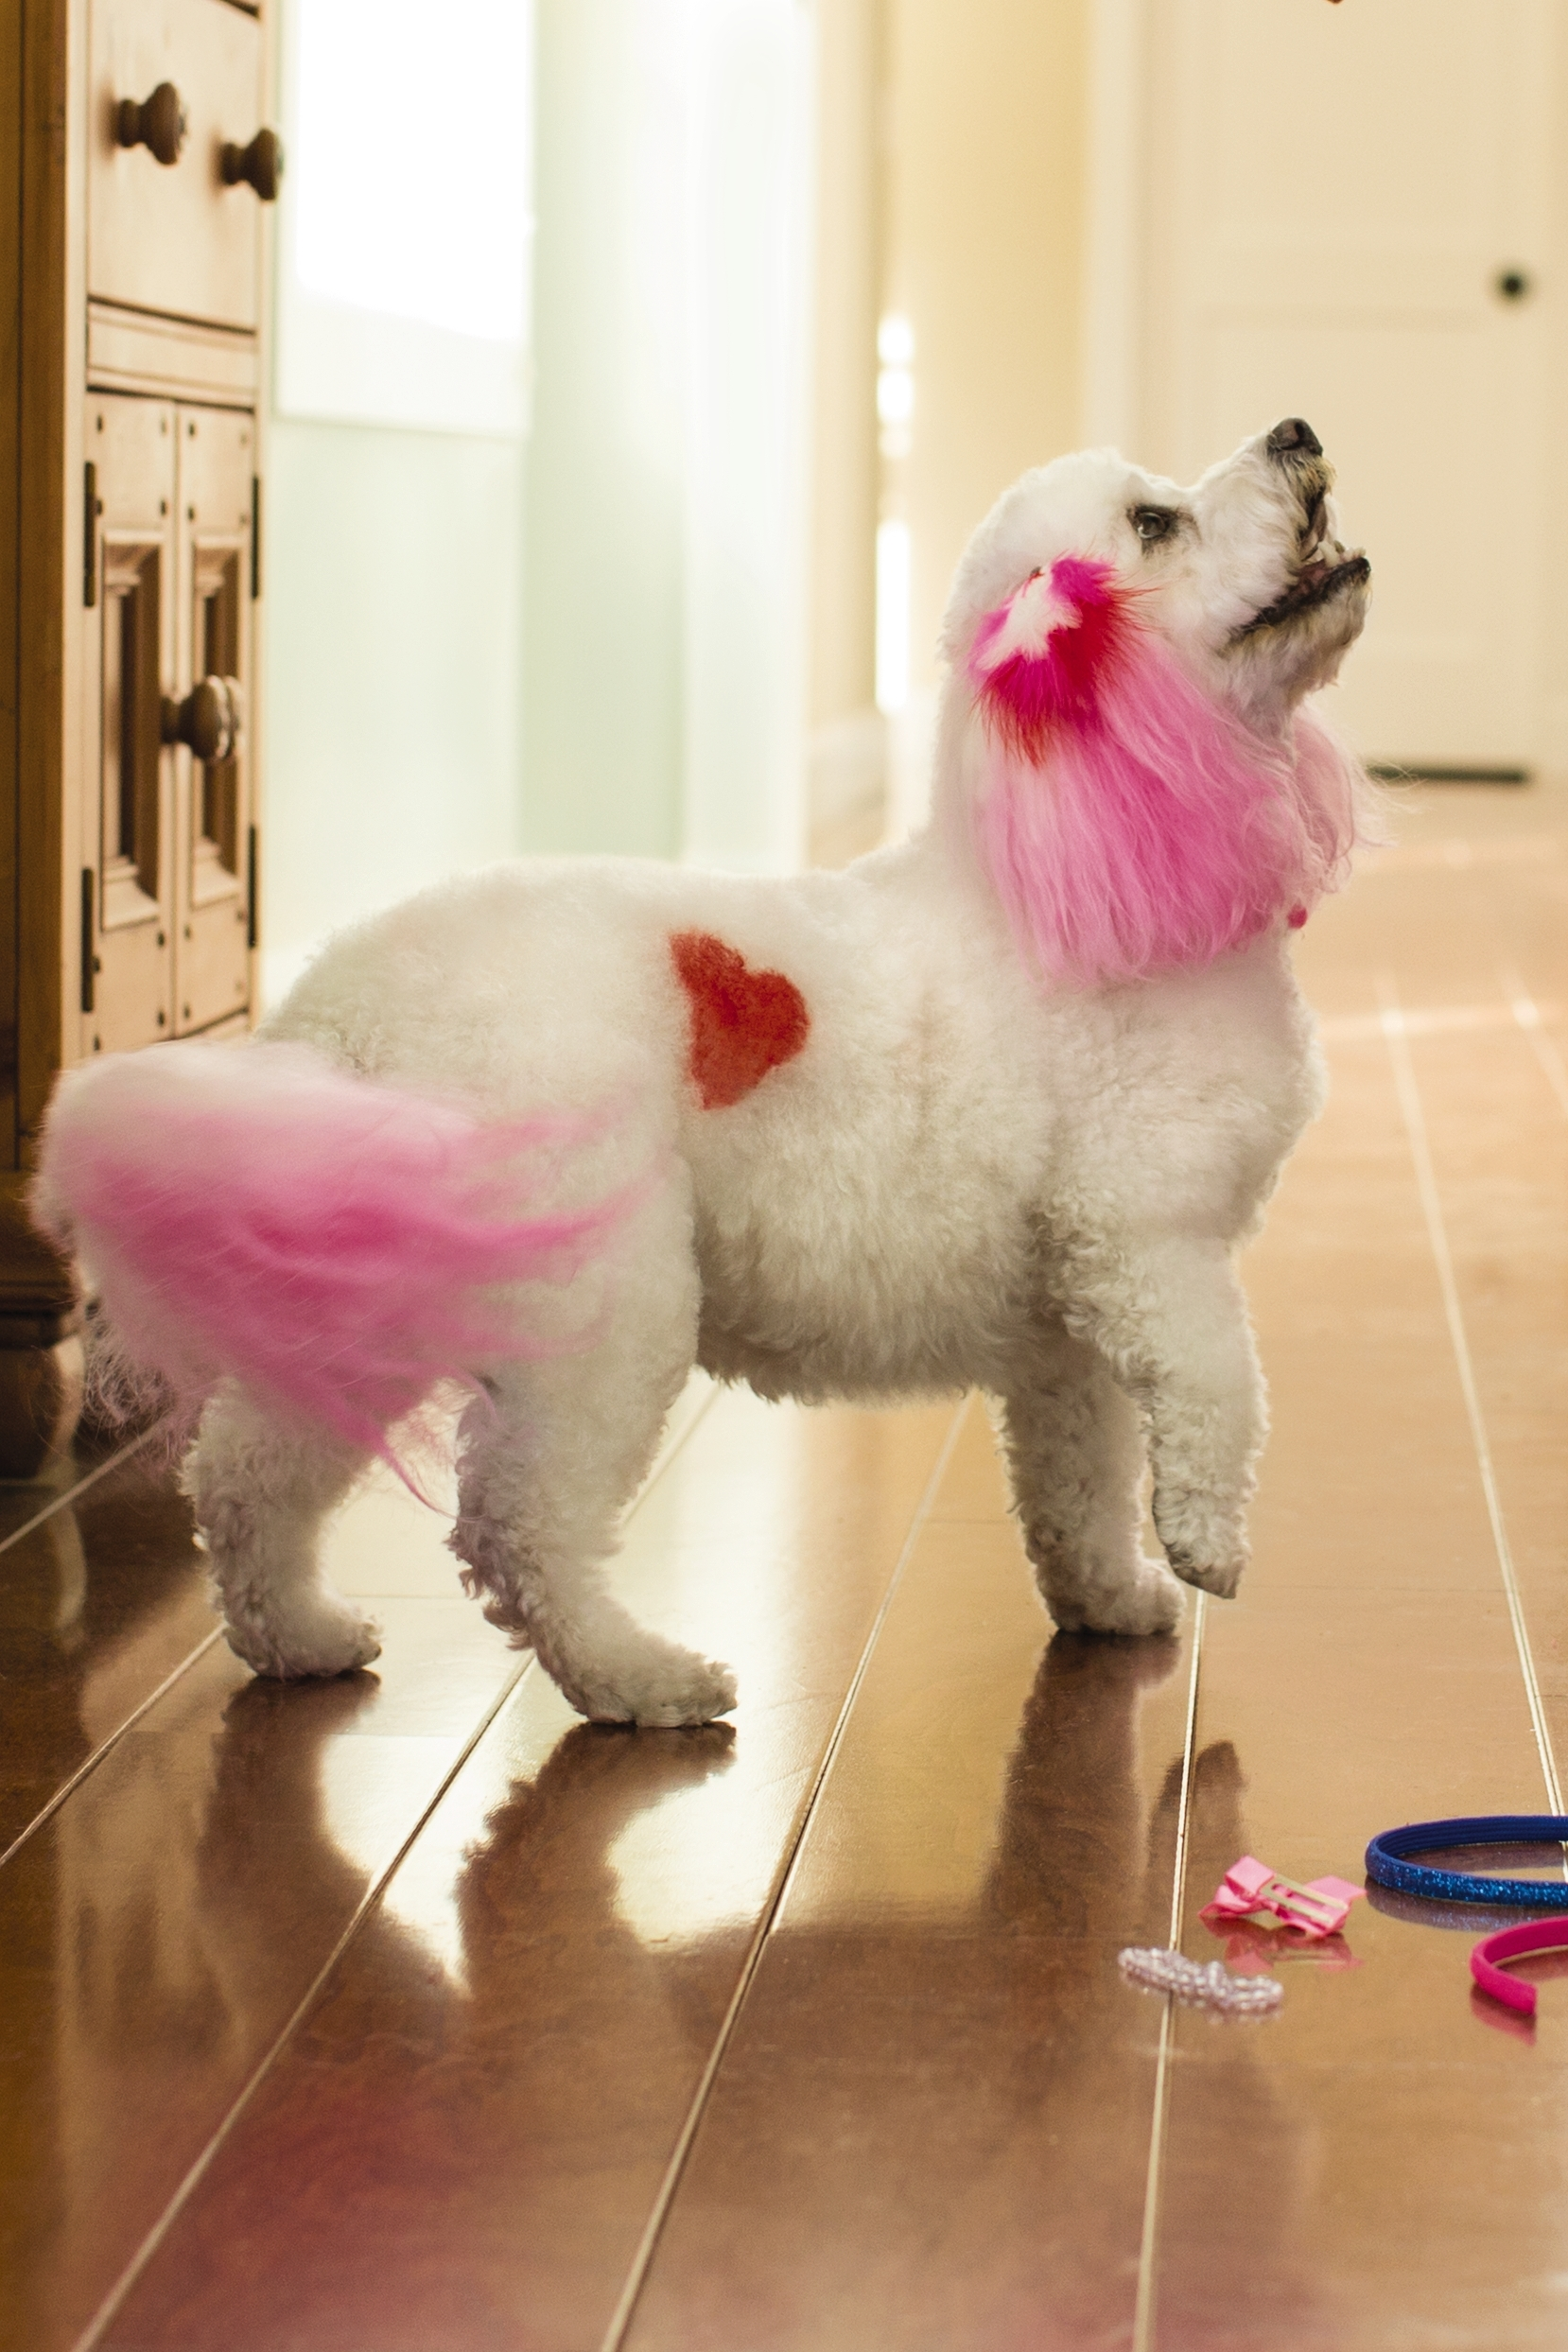 Petsmart Introduces Creative Grooming Options To Express